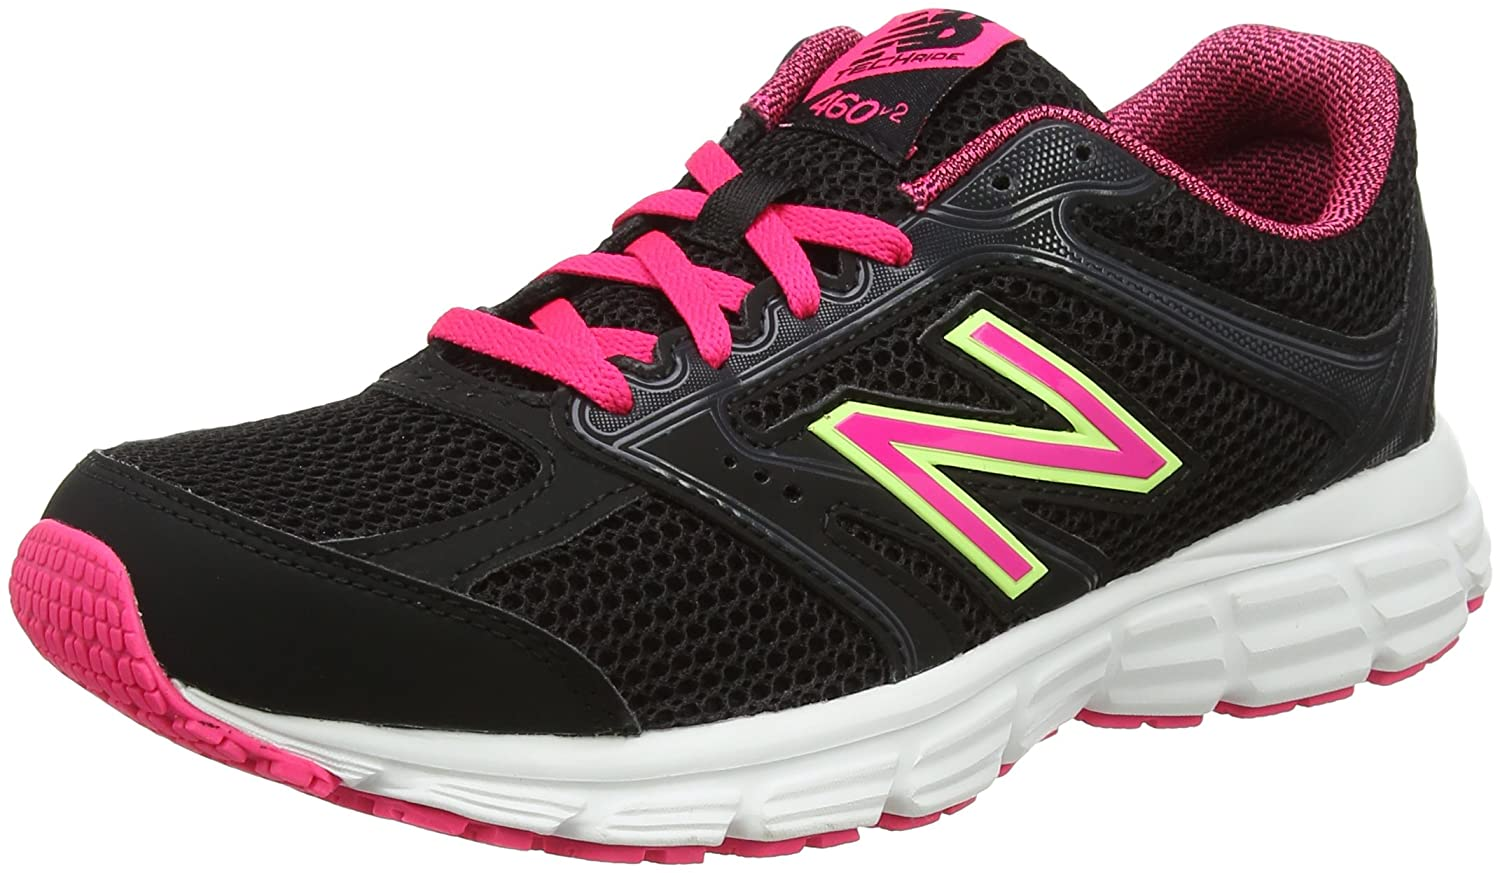 New Balance Women's 460v2 Cushioning B01NBODBLB 9.5 D US|Black/Pink